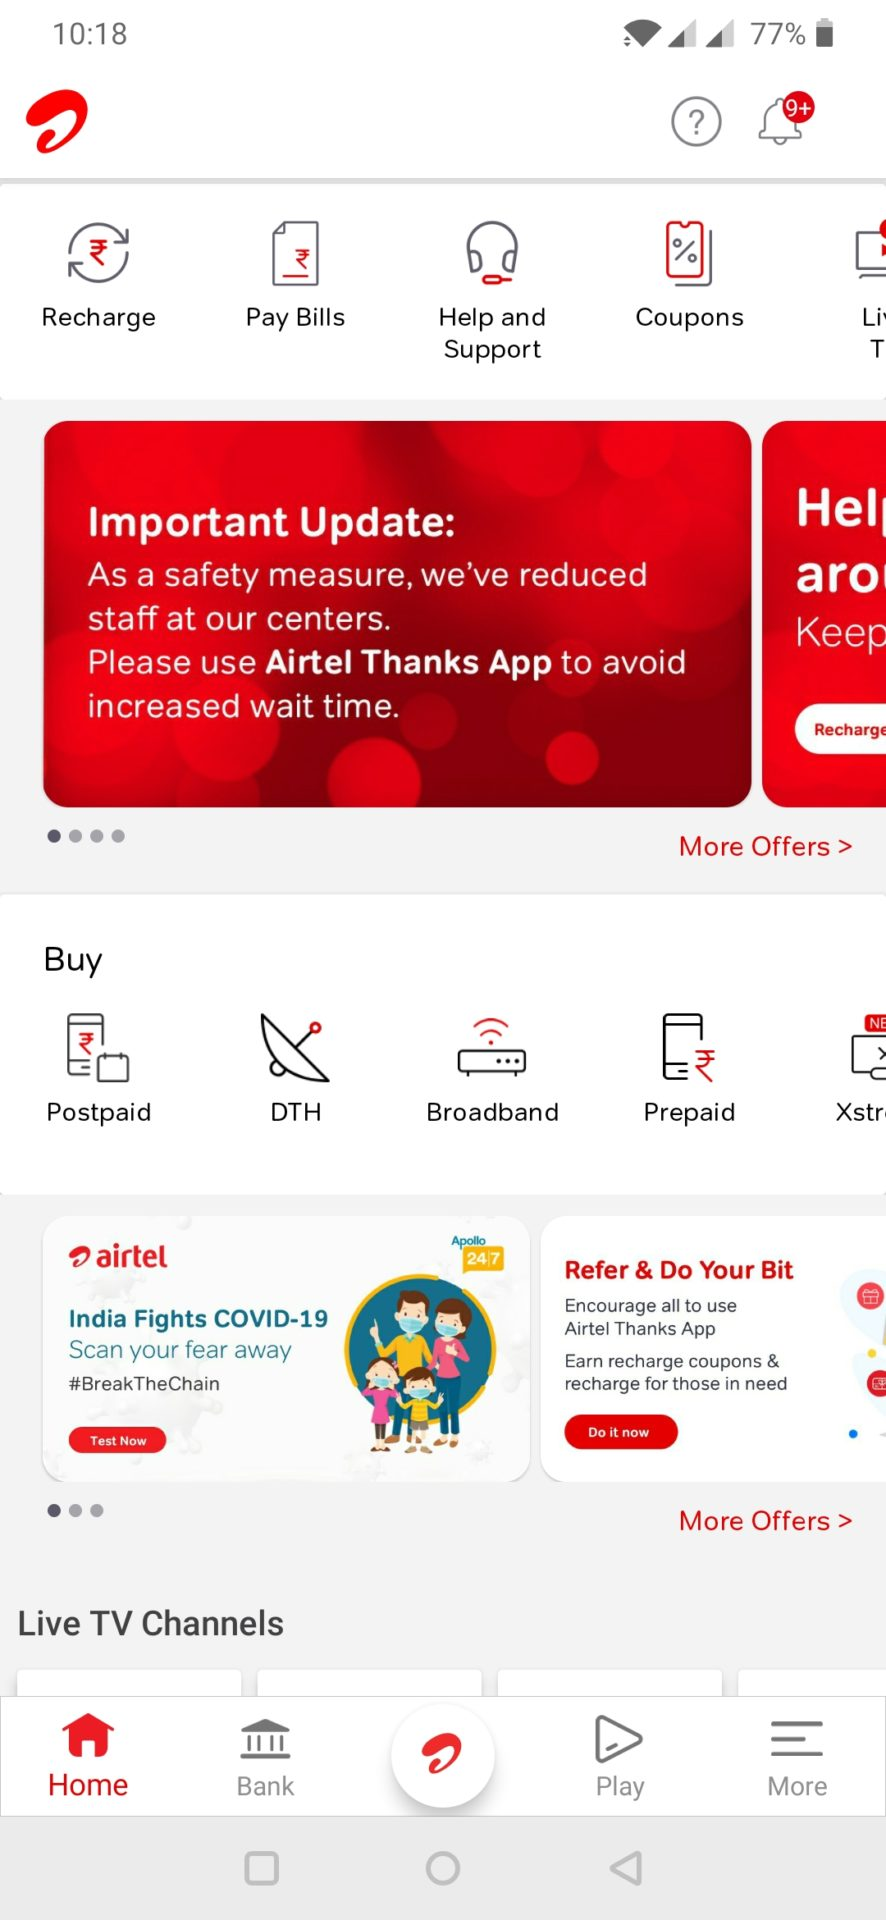 Check Your Coronavirus Risk Level Using Airtel's Coronavirus Symptom Checker Tool